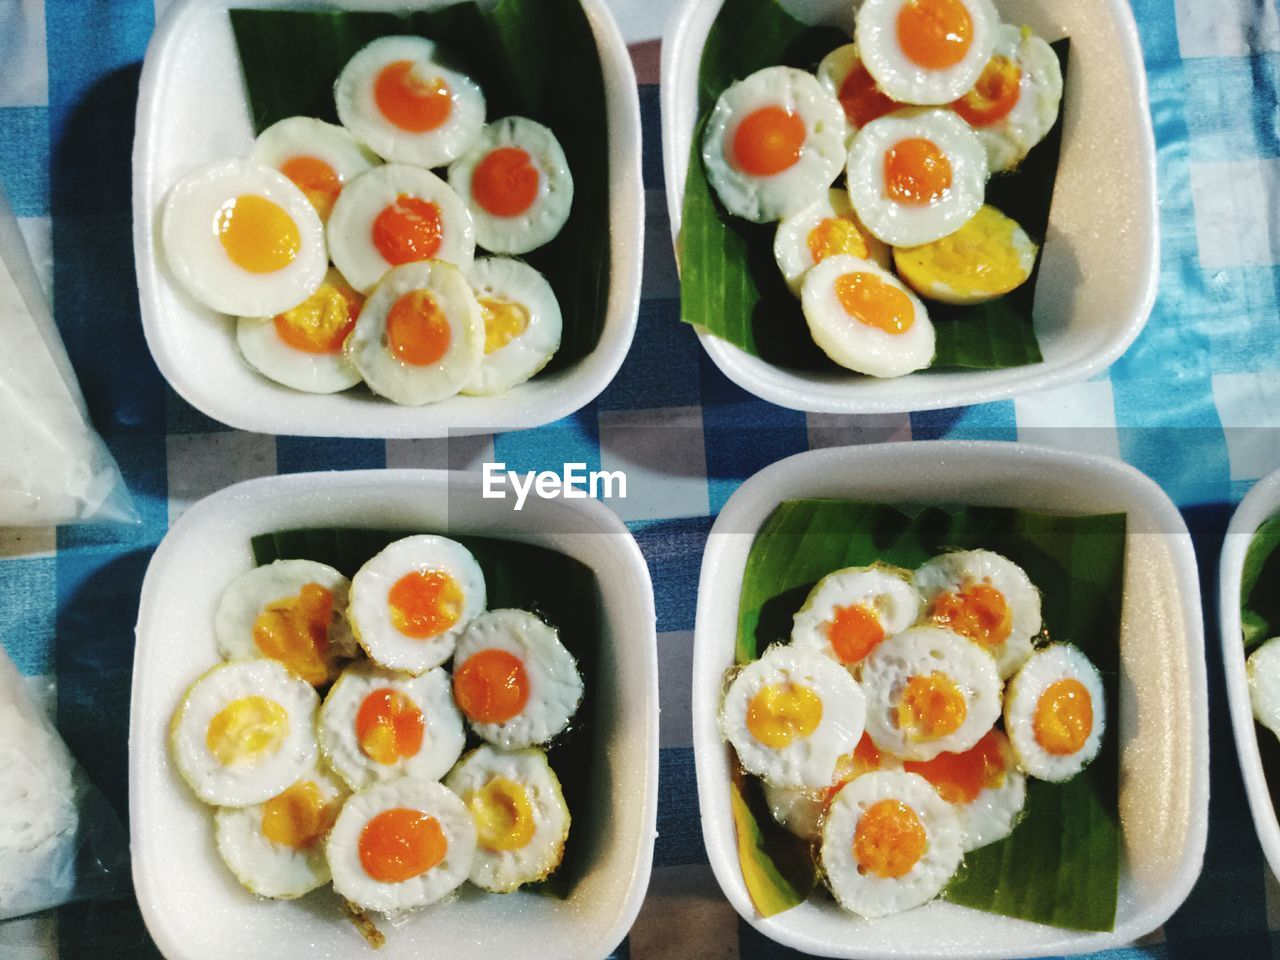 food and drink, ready-to-eat, food, freshness, healthy eating, still life, serving size, indoors, table, egg, plate, rice - food staple, fried egg, egg yolk, indulgence, healthy lifestyle, no people, meal, temptation, high angle view, vegetable, close-up, slice, appetizer, fried rice, day